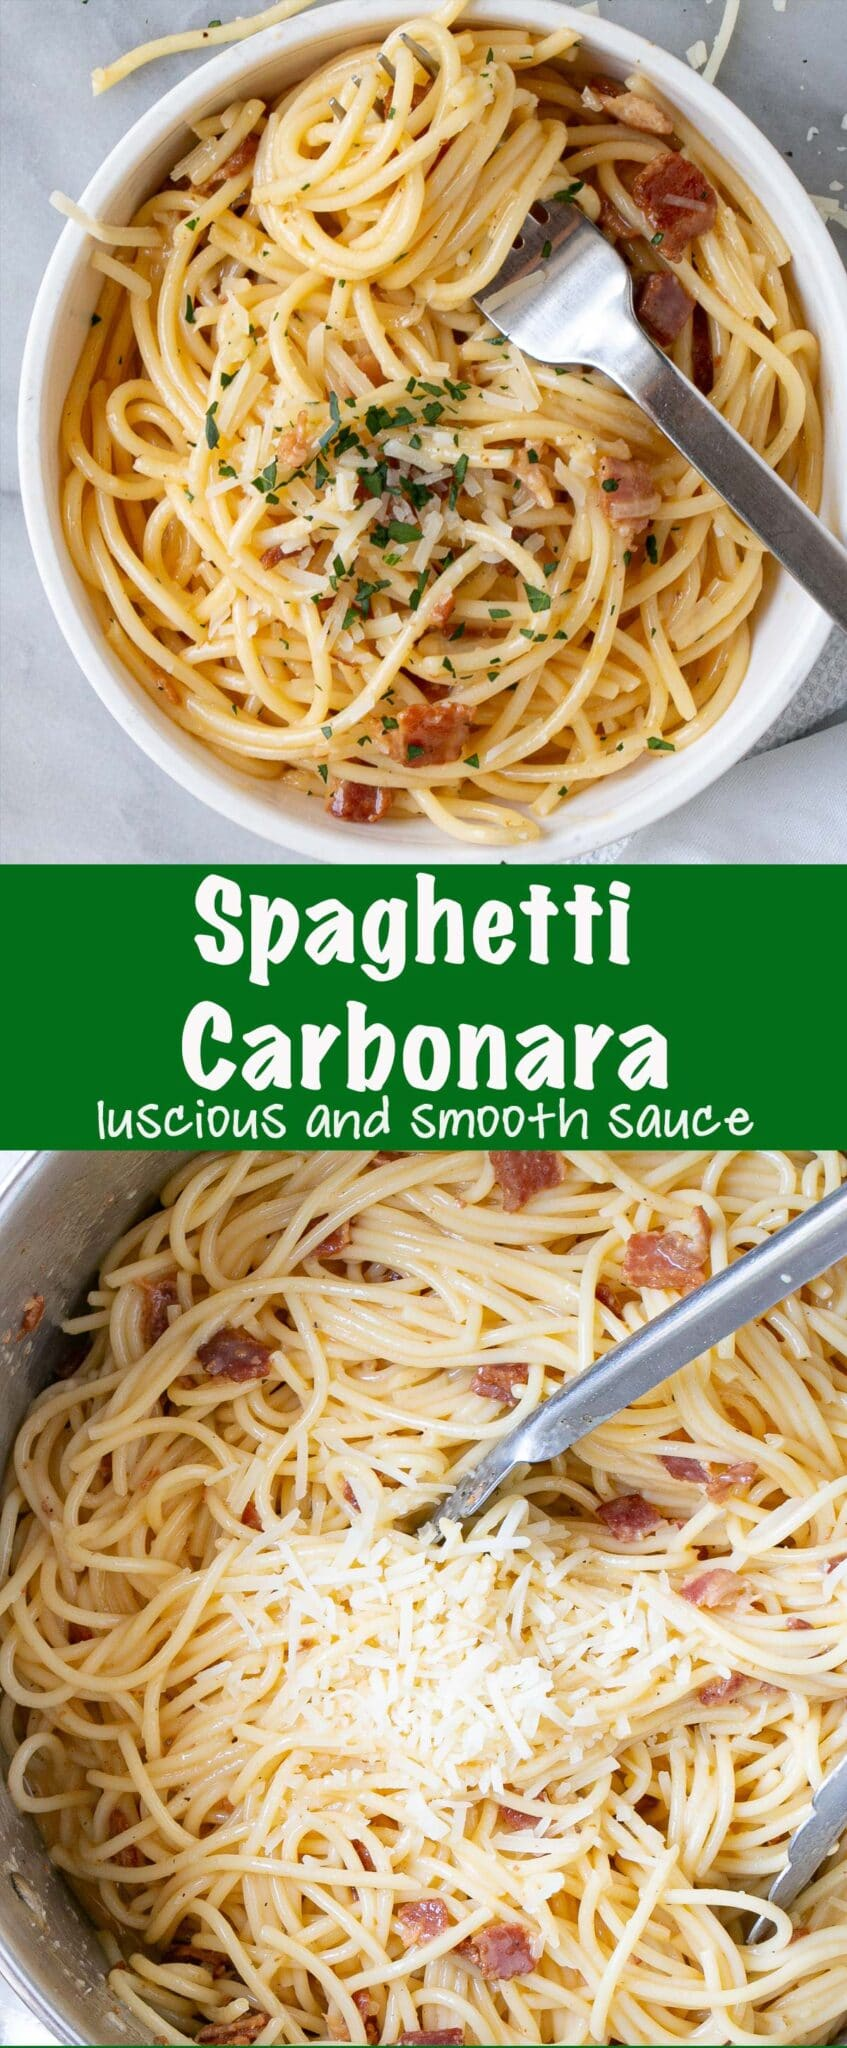 Silky smooth with melted parmesan cheese Spaghetti Carbonara recipe. This Carbonara recipe is perfect for a comfort food weeknight meal as it comes together quickly with pantry staples. {AD} via @mykitchenlove